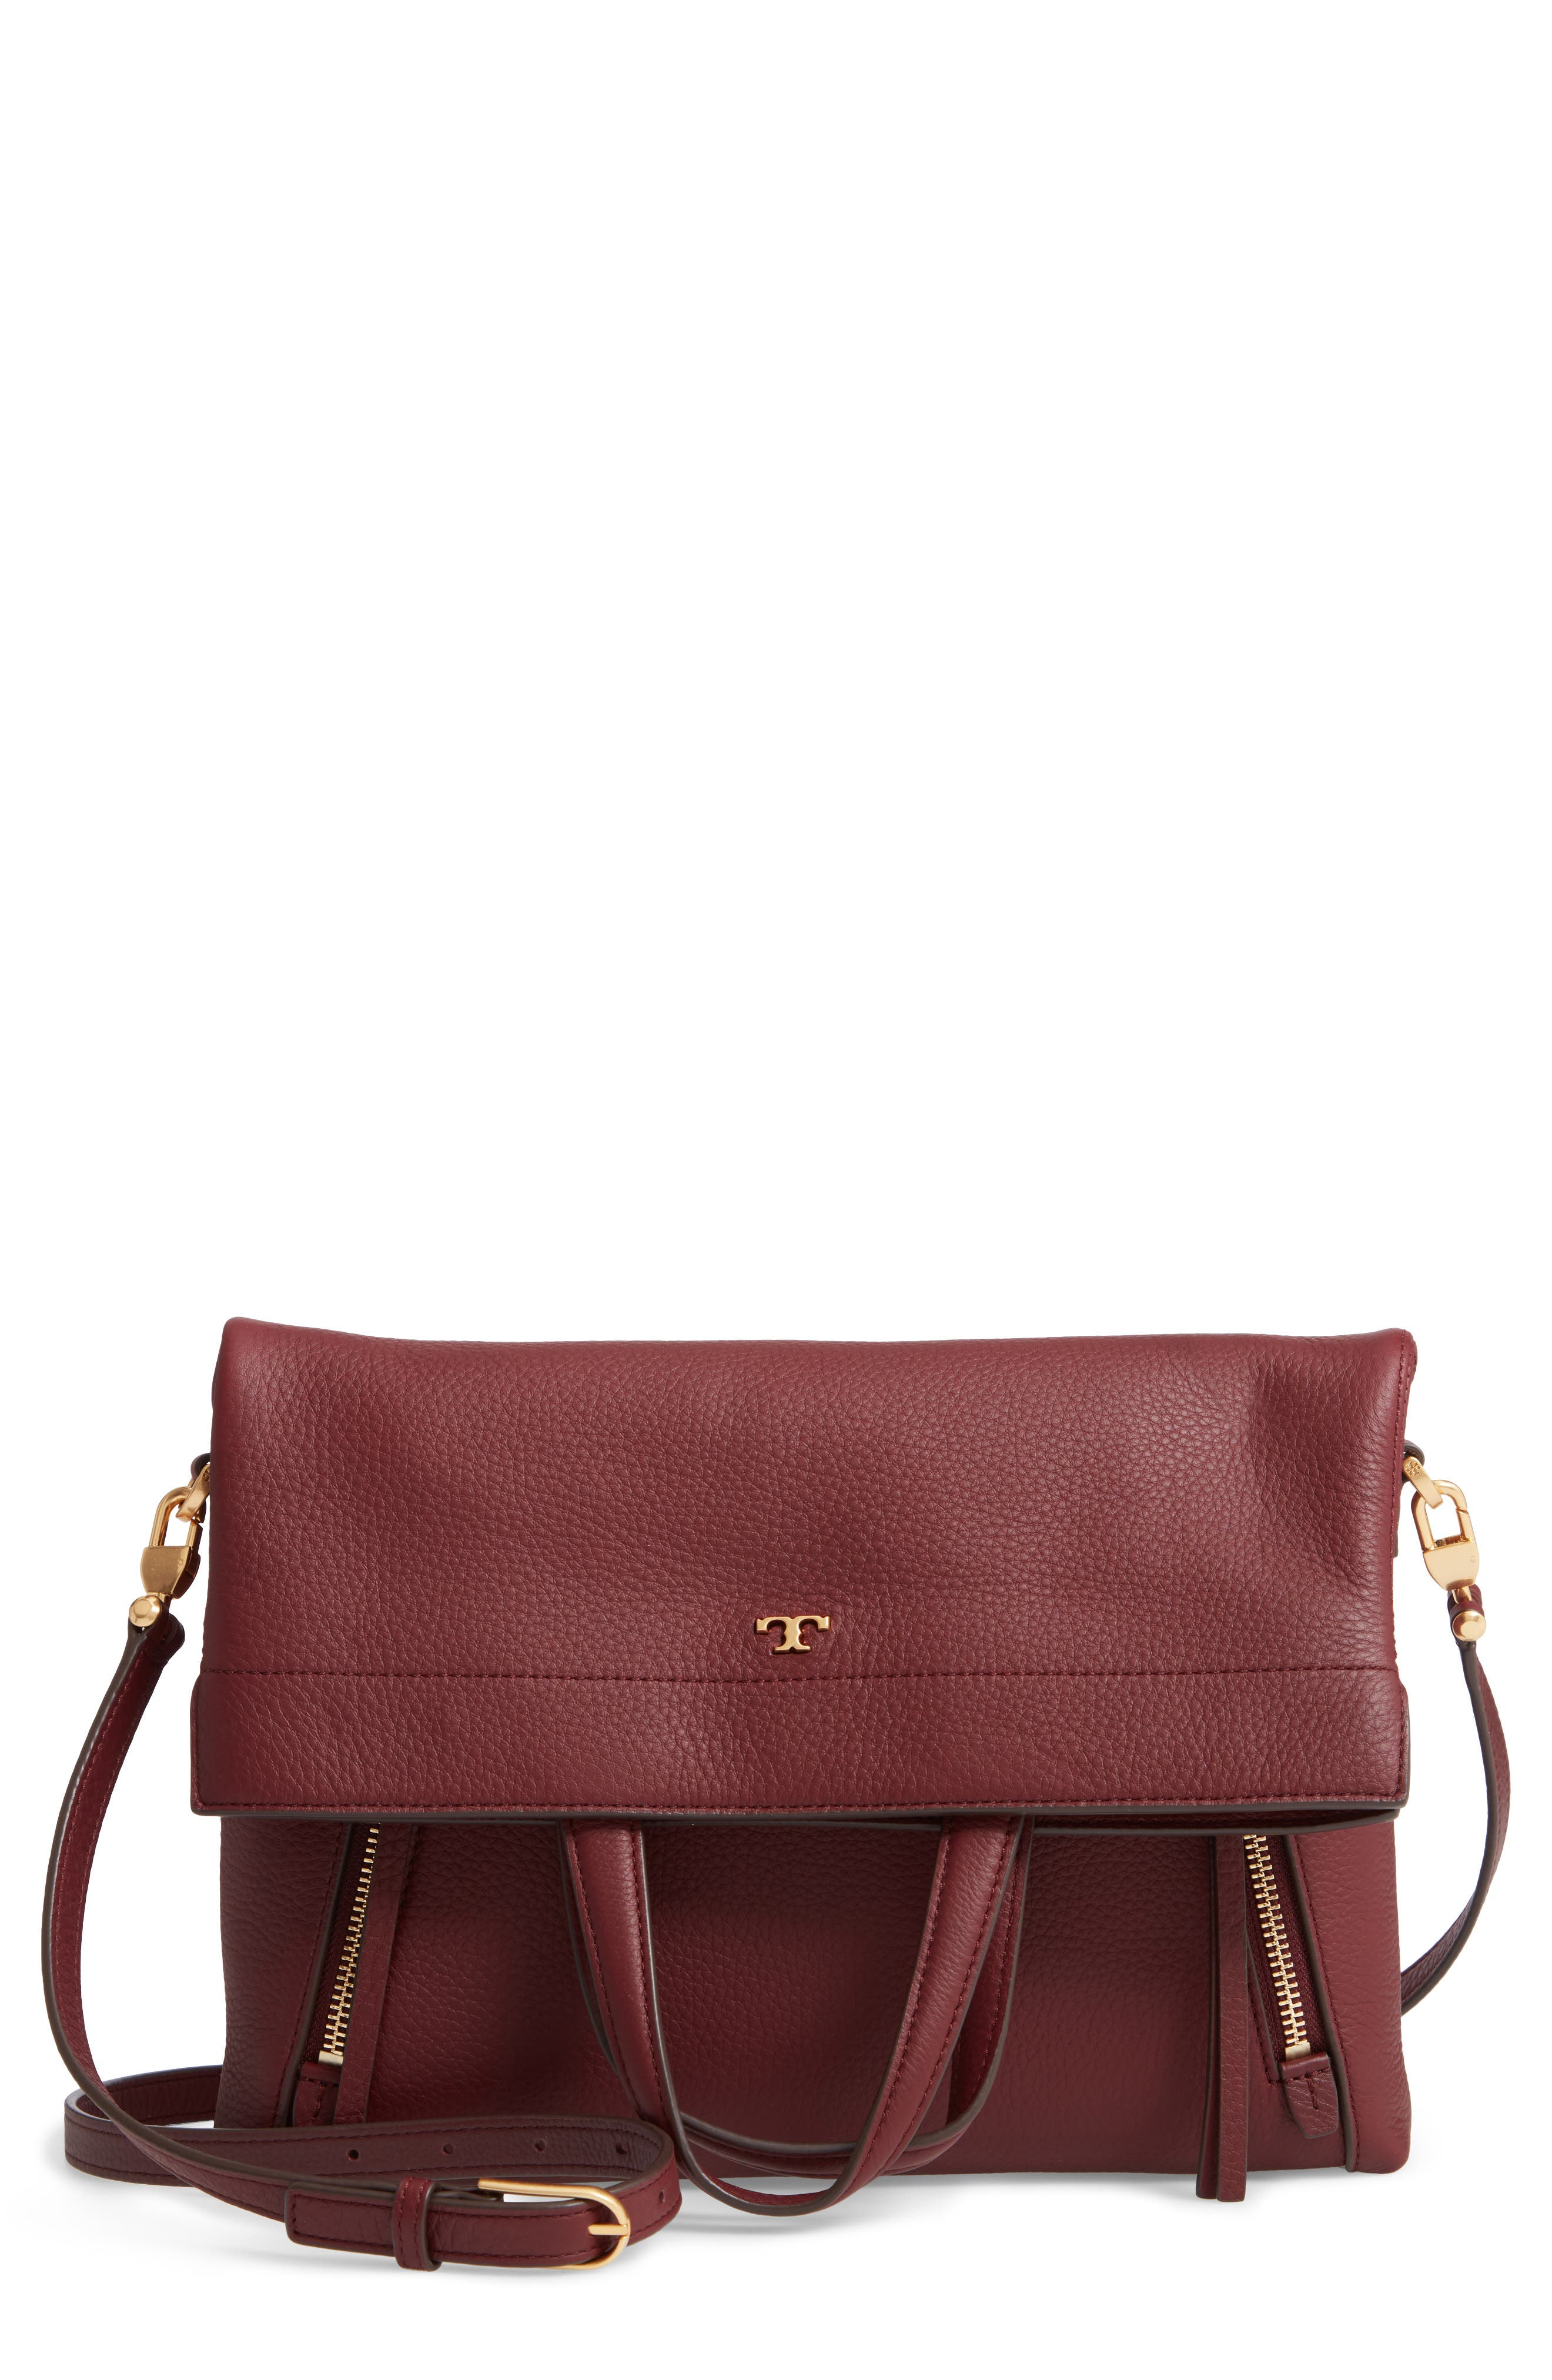 Half Moon Convertible Crossbody Bag,                             Main thumbnail 1, color,                             CLARET